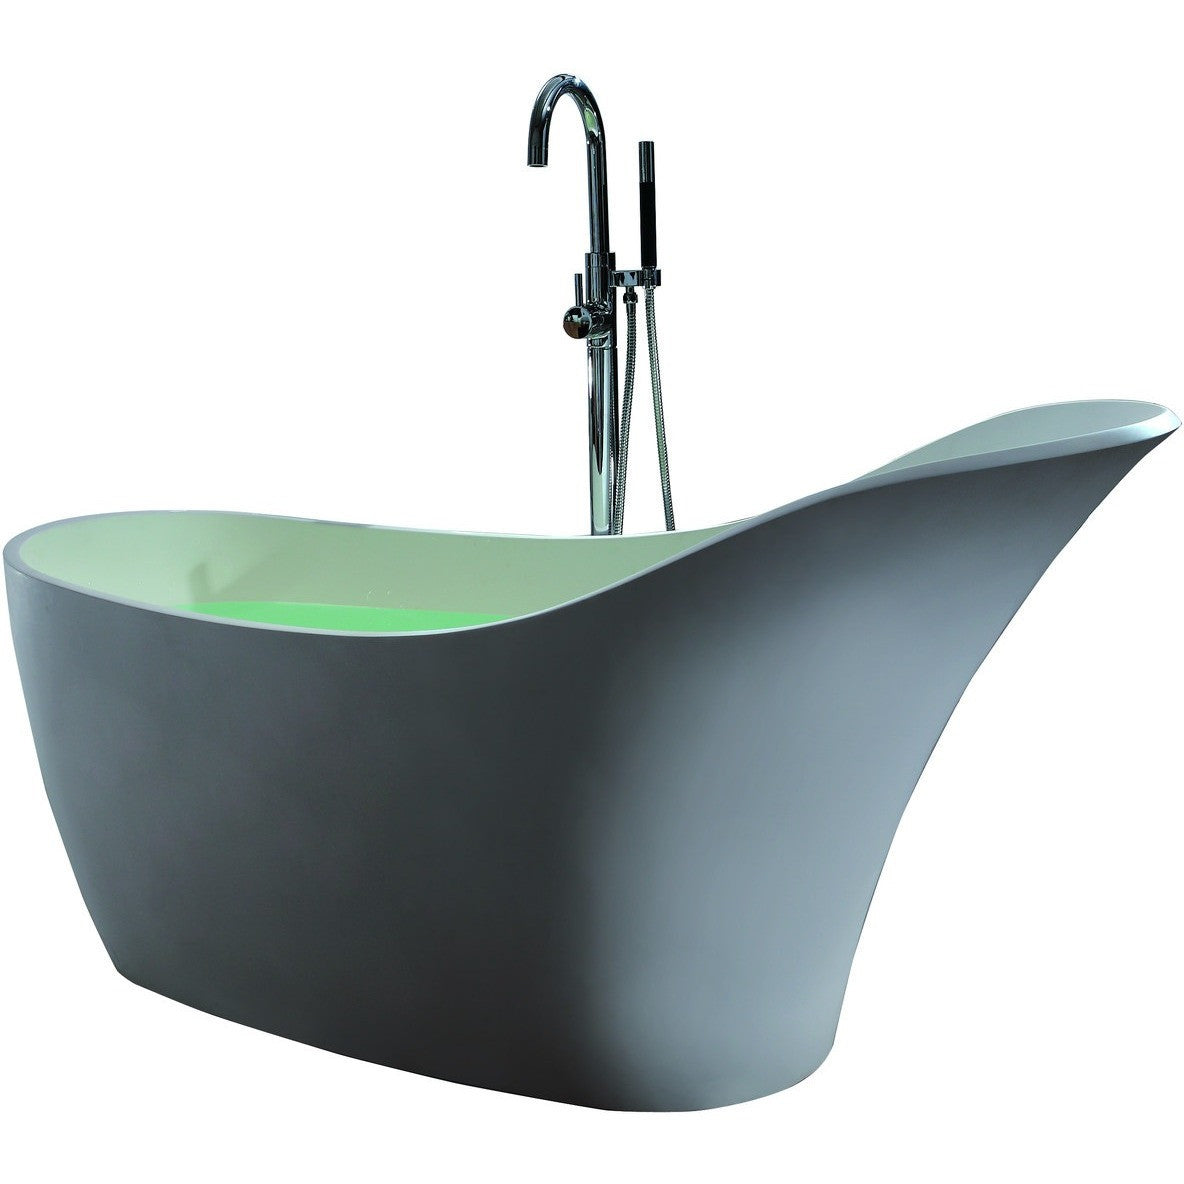 "Control Brand True Solid Surface Soaking Tub - ""Slipper"" - Luxury ..."